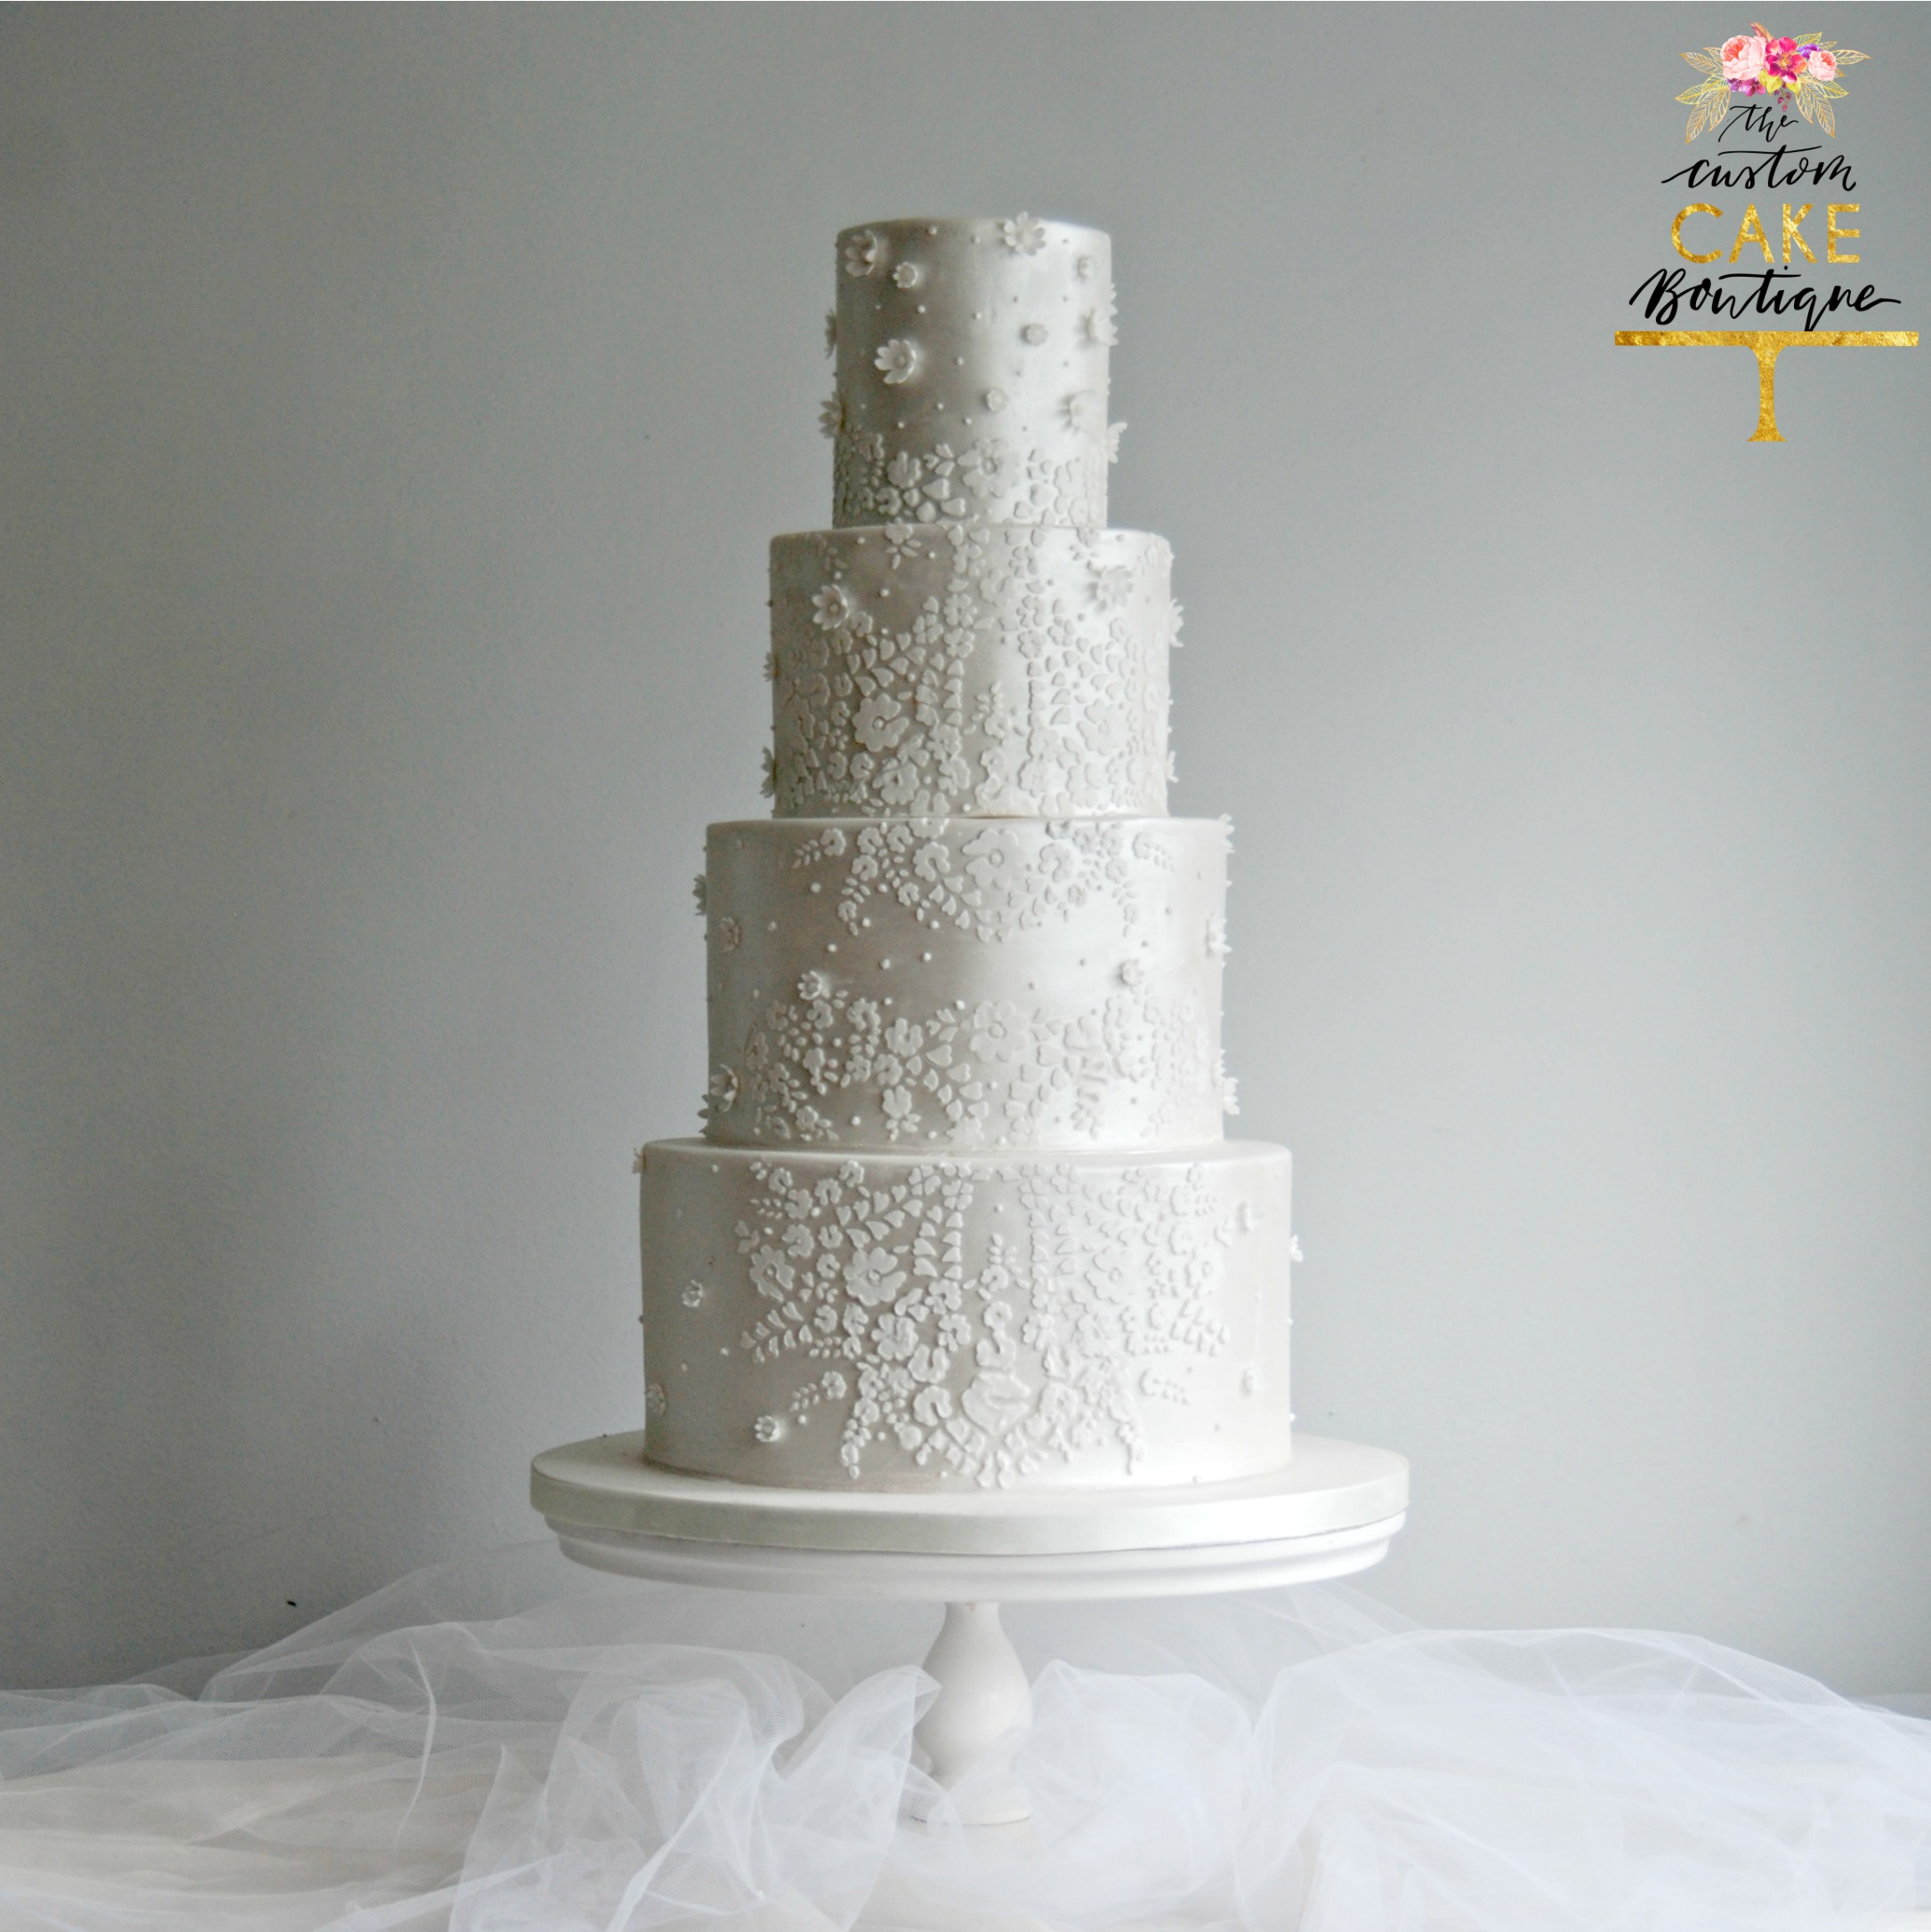 lUSTRE wHITE lACE & pEARLS wEDDING cAKE